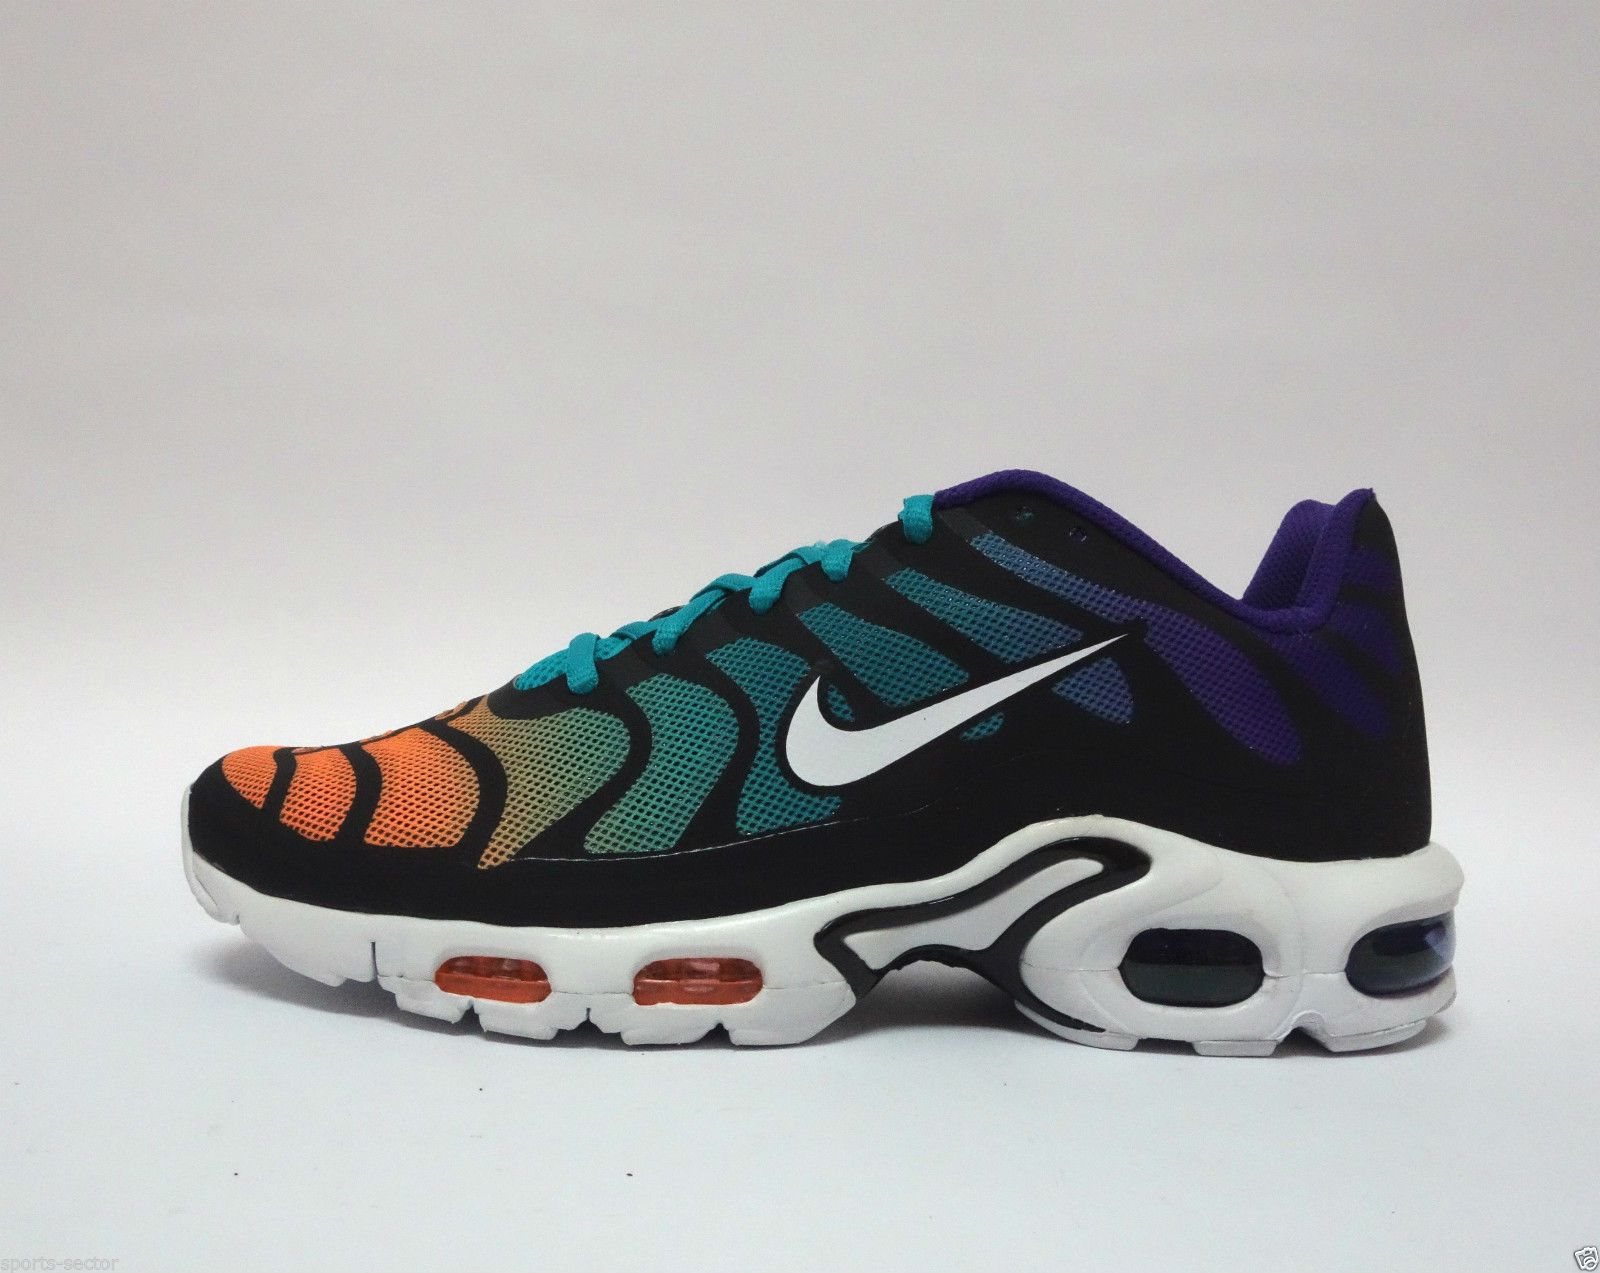 buy popular acbe4 986e7 Nike Air Max Plus Hyperfuse TN1 Tuned Mens Trainers Shoes Turbo Green White    eBay